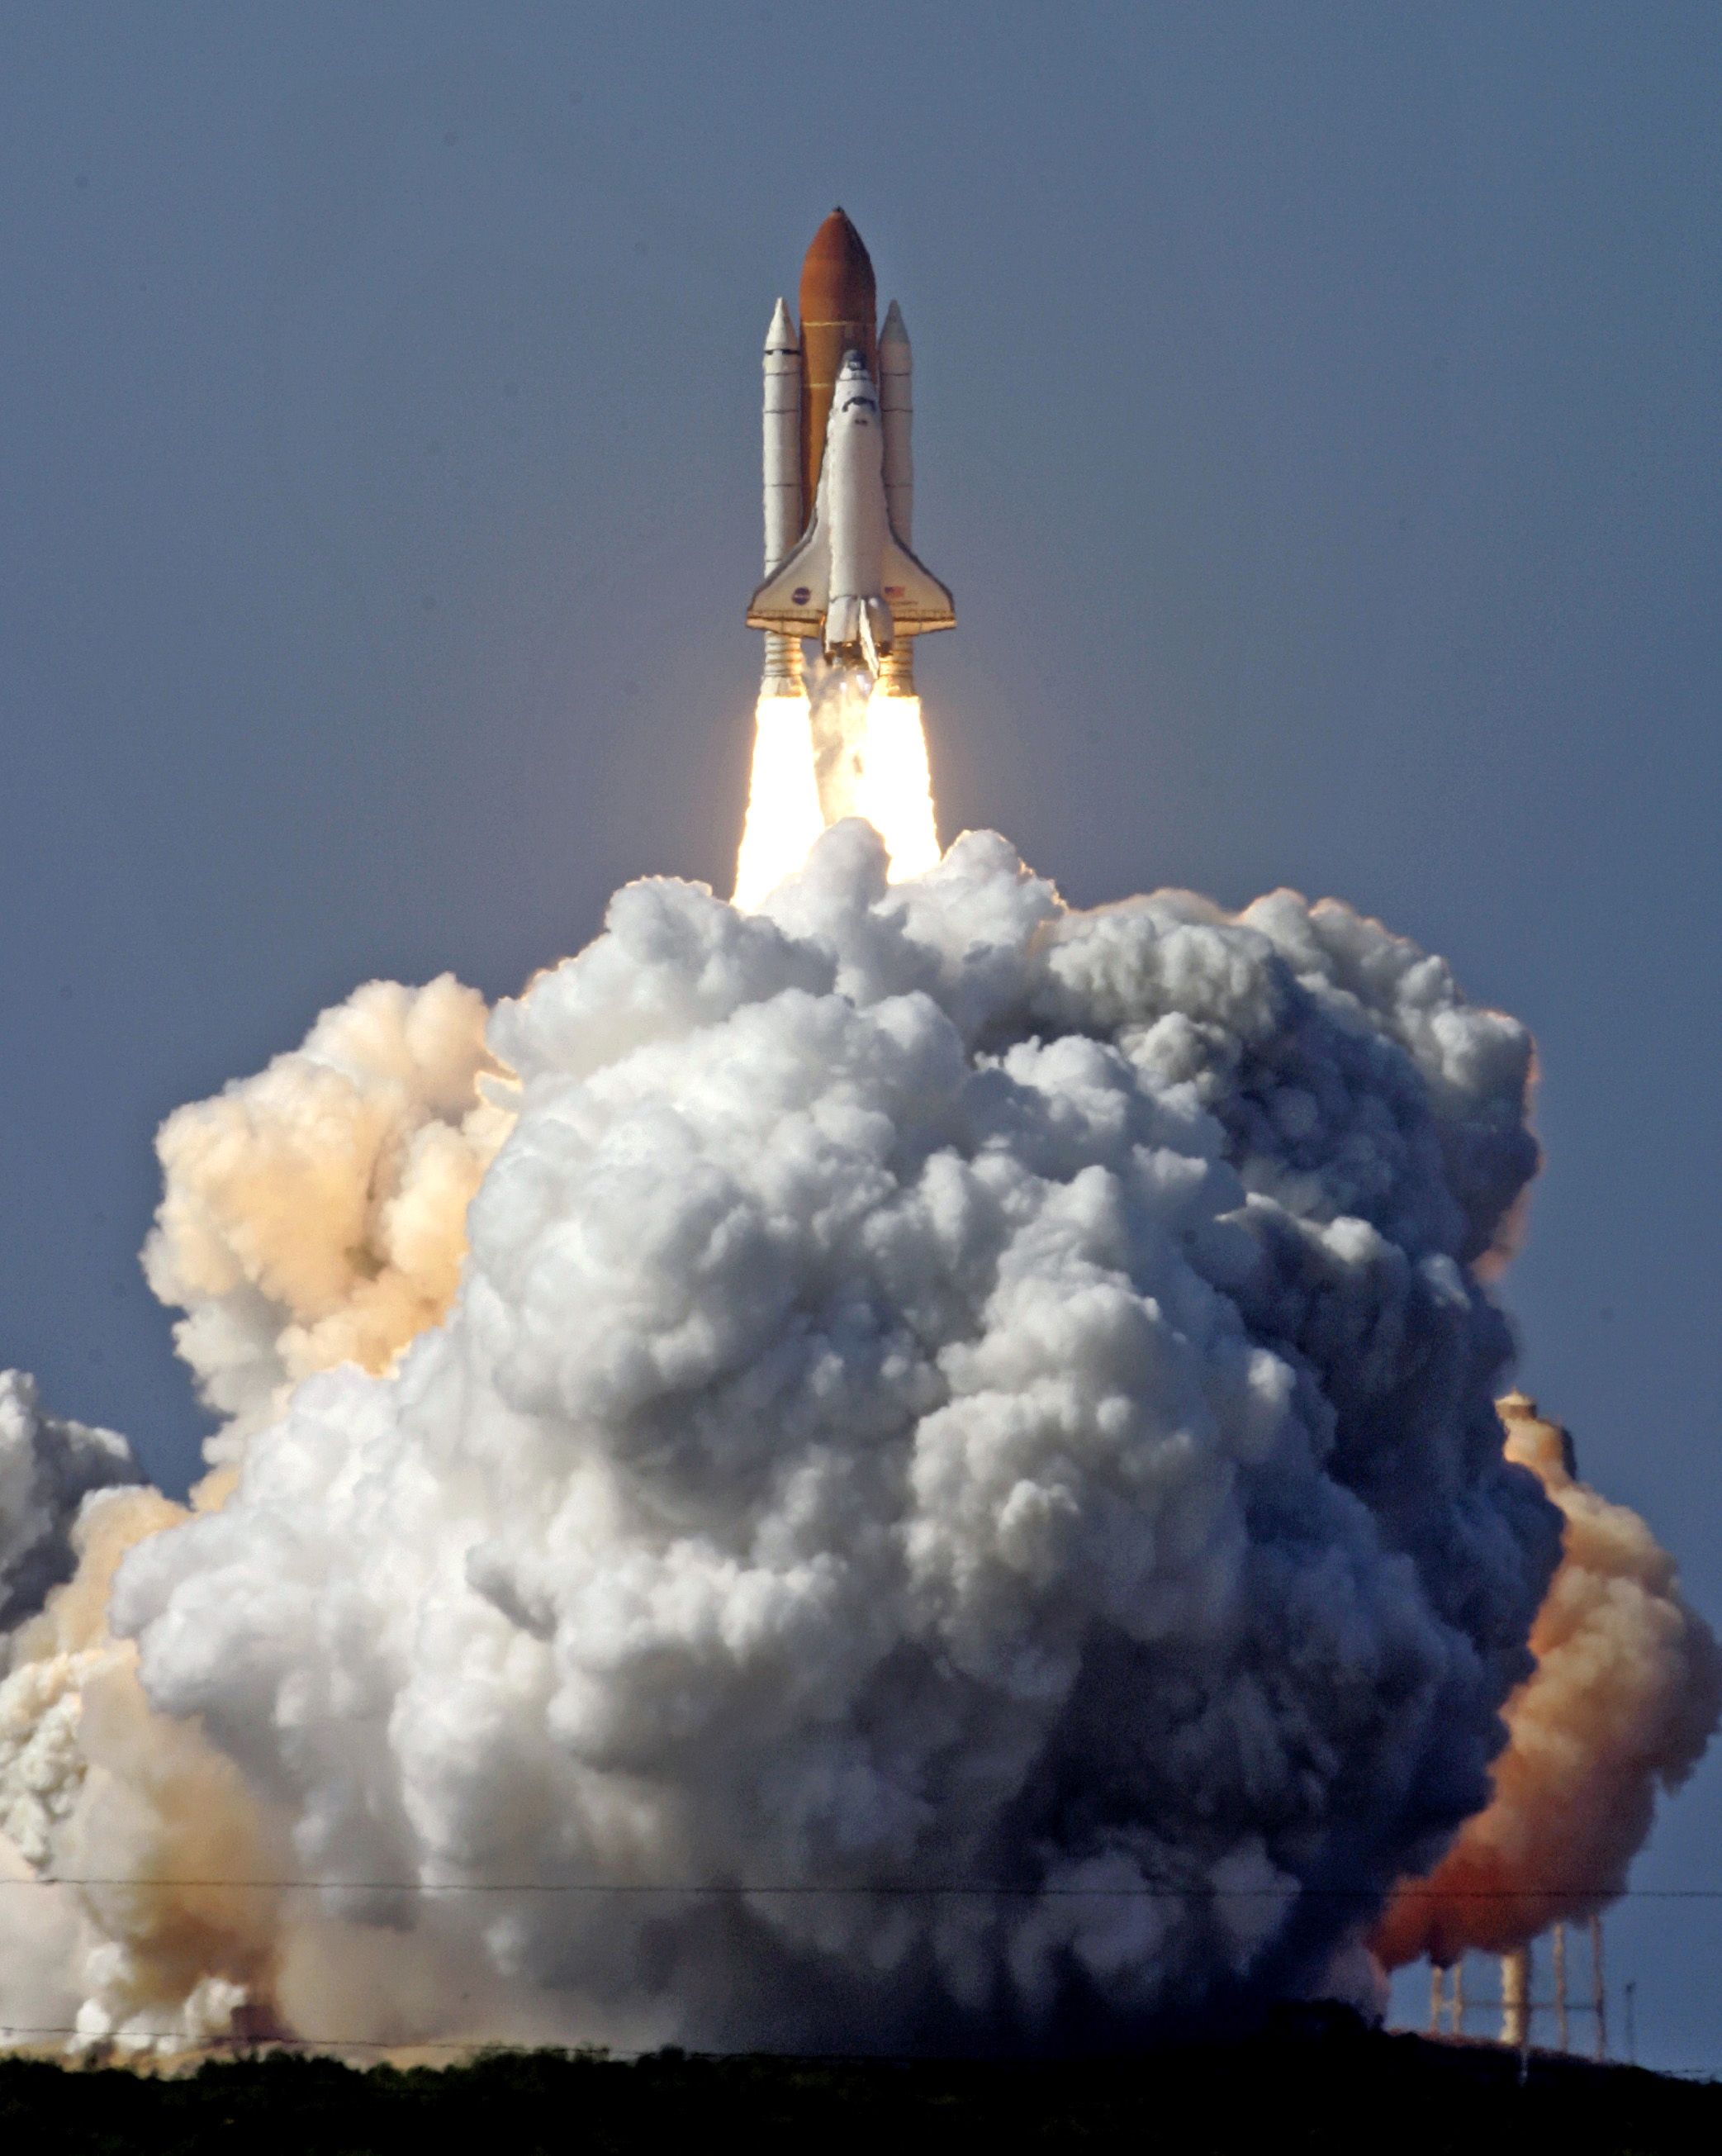 The Space Shuttle Discovery lifts off from launch pad 39a at the Kennedy Space Center in Cape Canaveral, Fla., Saturday, May 31, 2008.